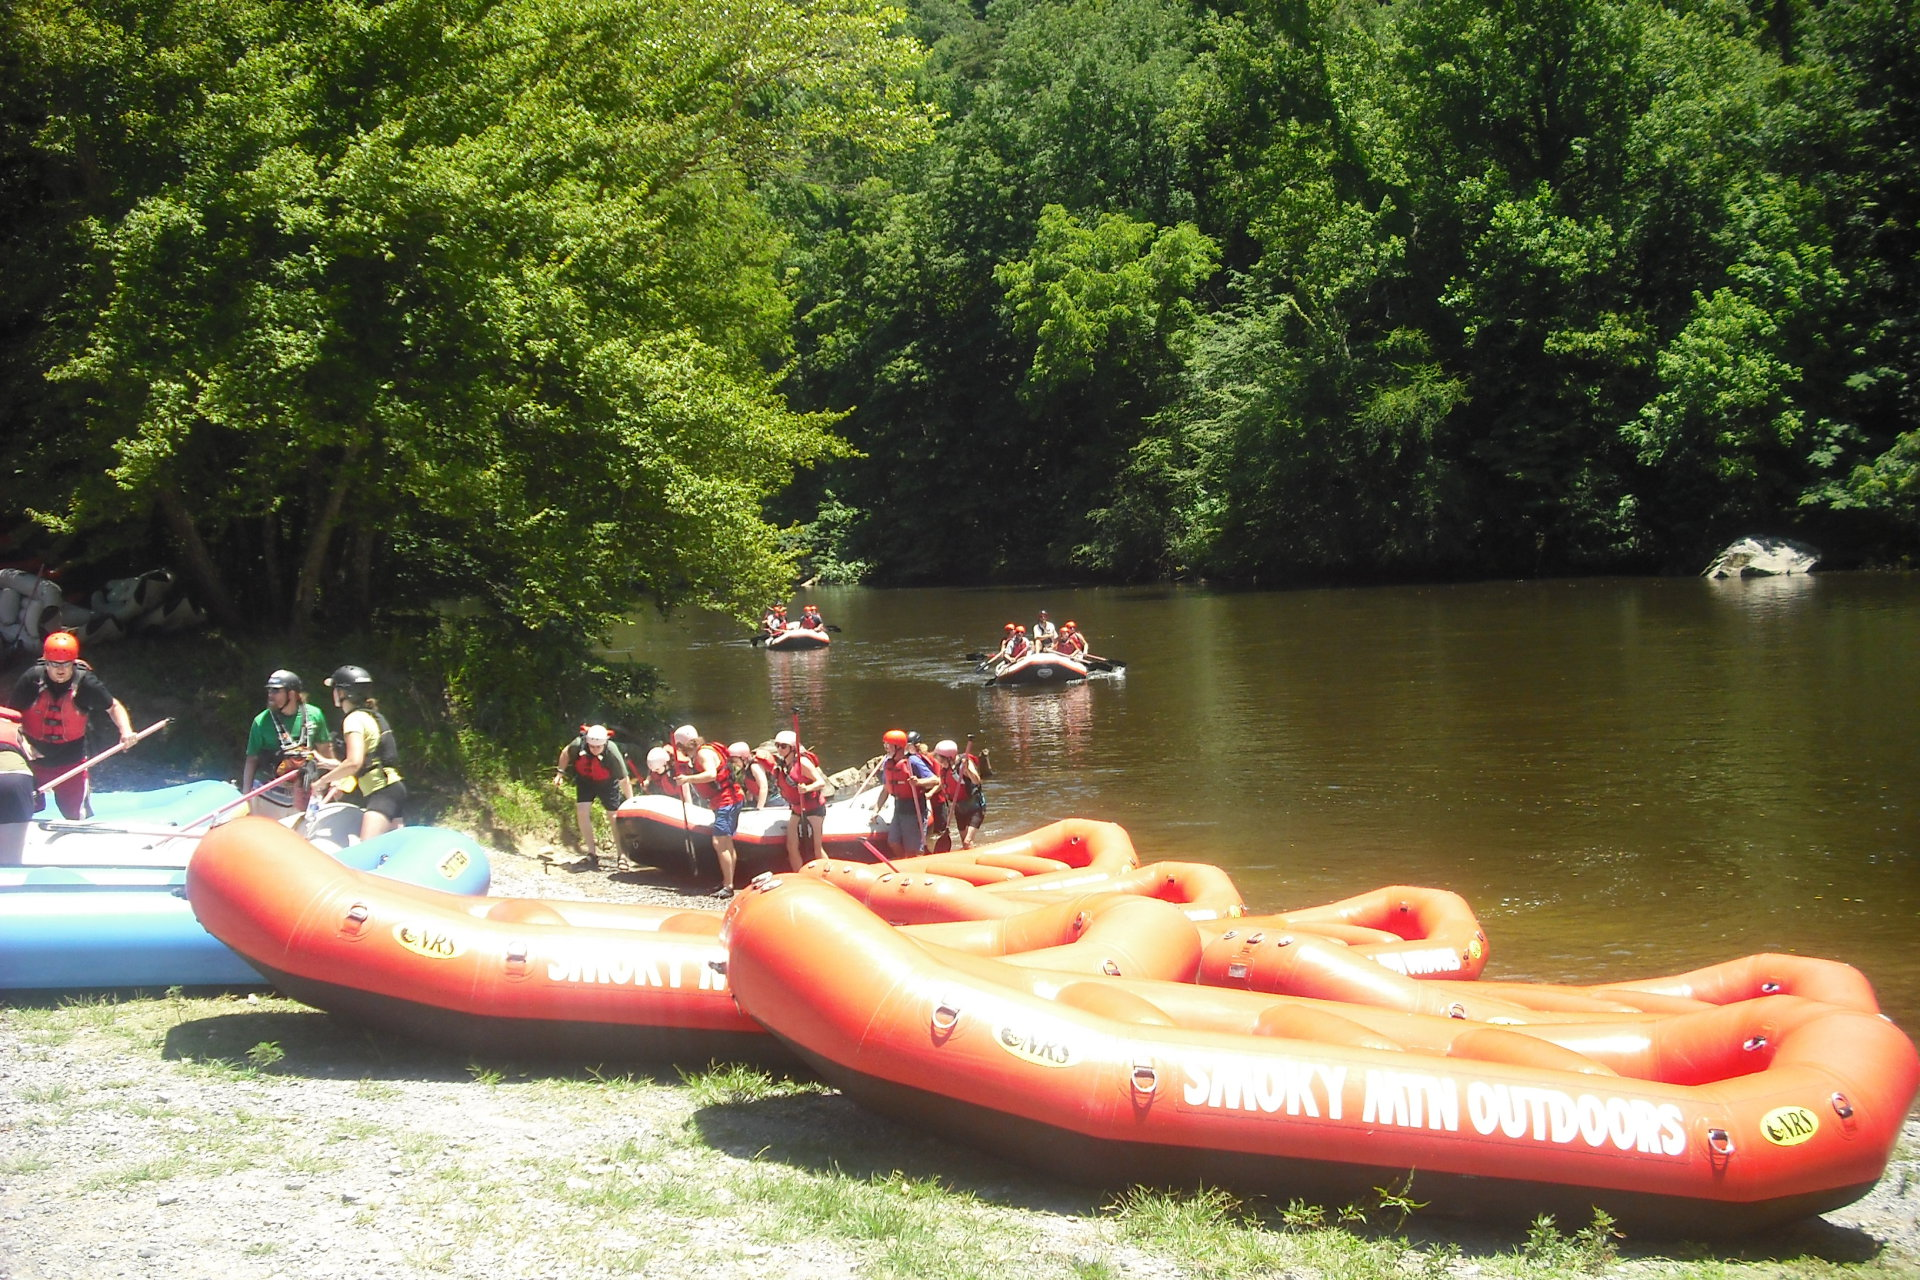 Rafting and water tubing in the Smokies - Splashing Summer Family Fun